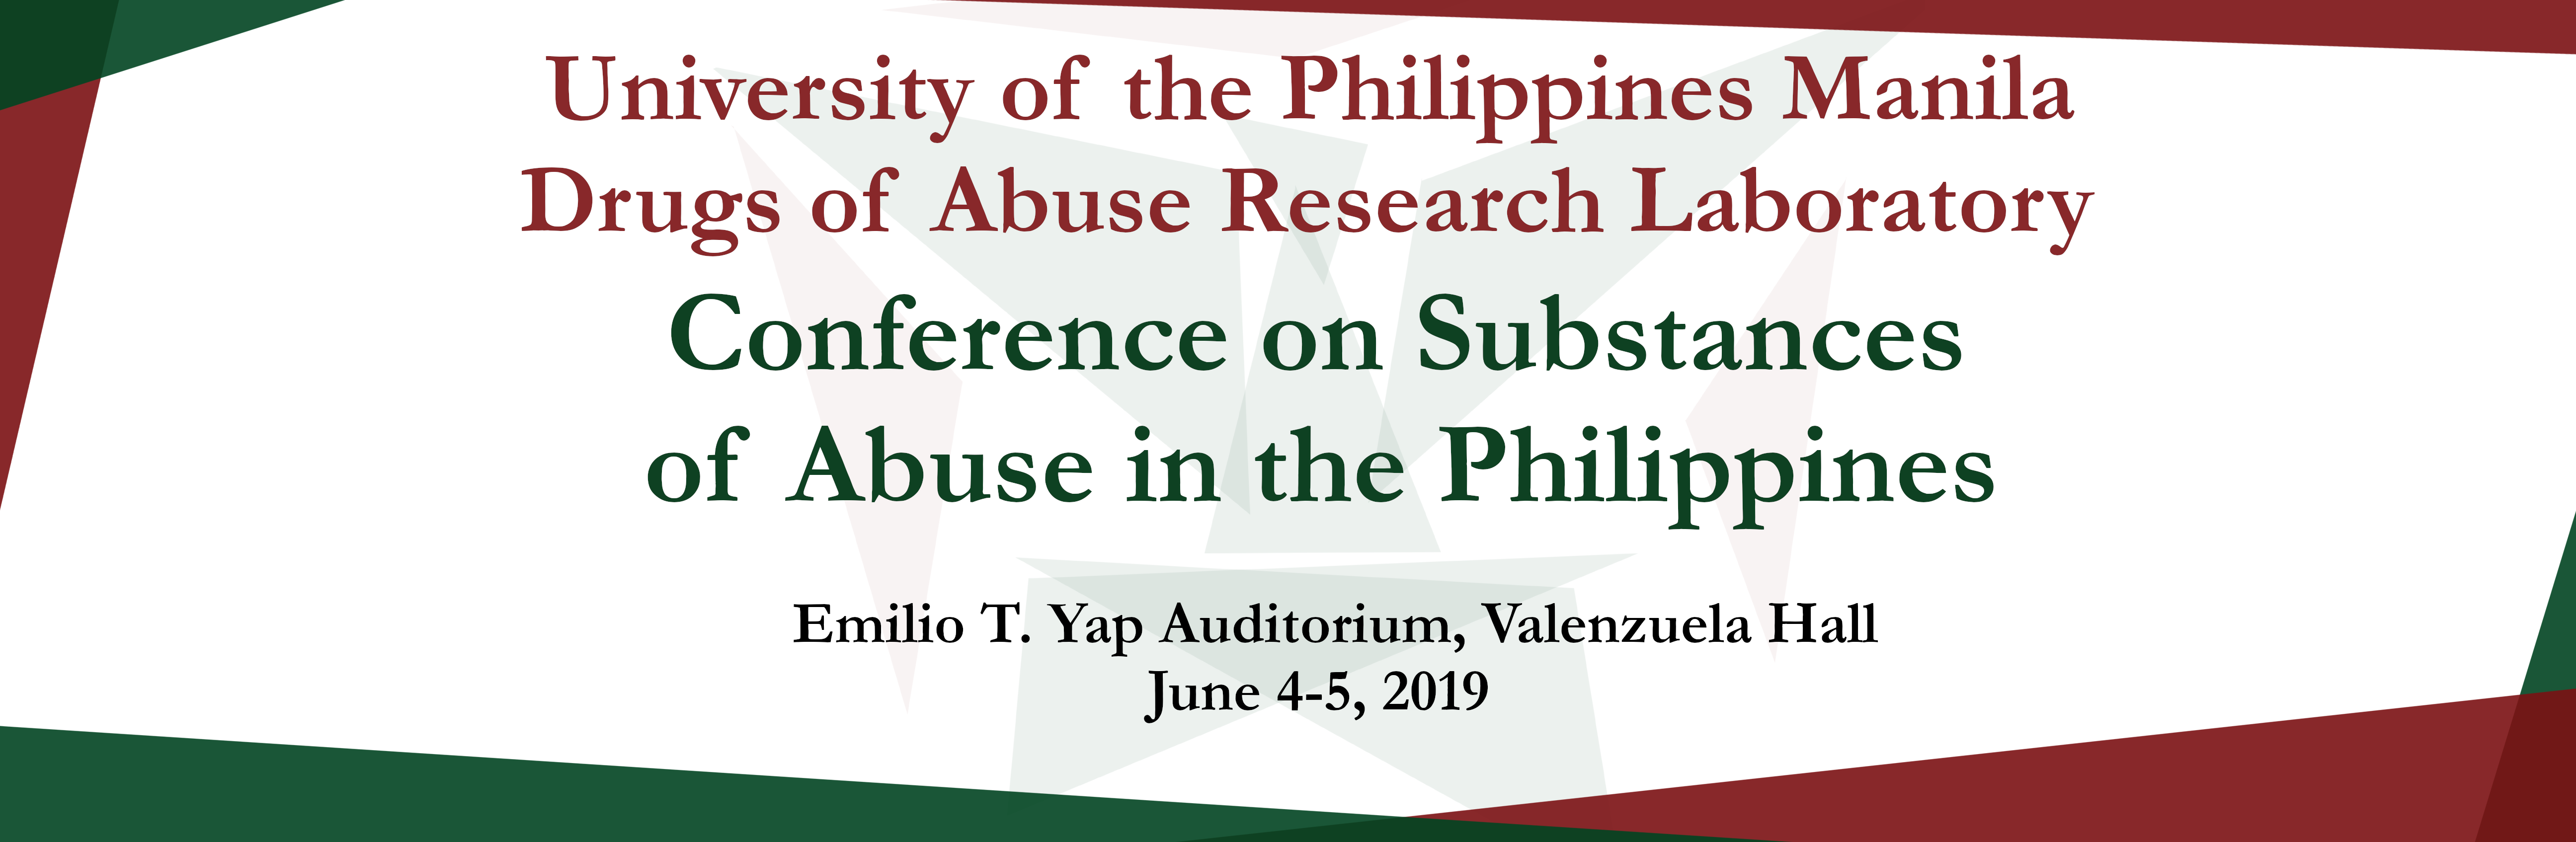 Conference On Substances Of Abuse In The Philippines